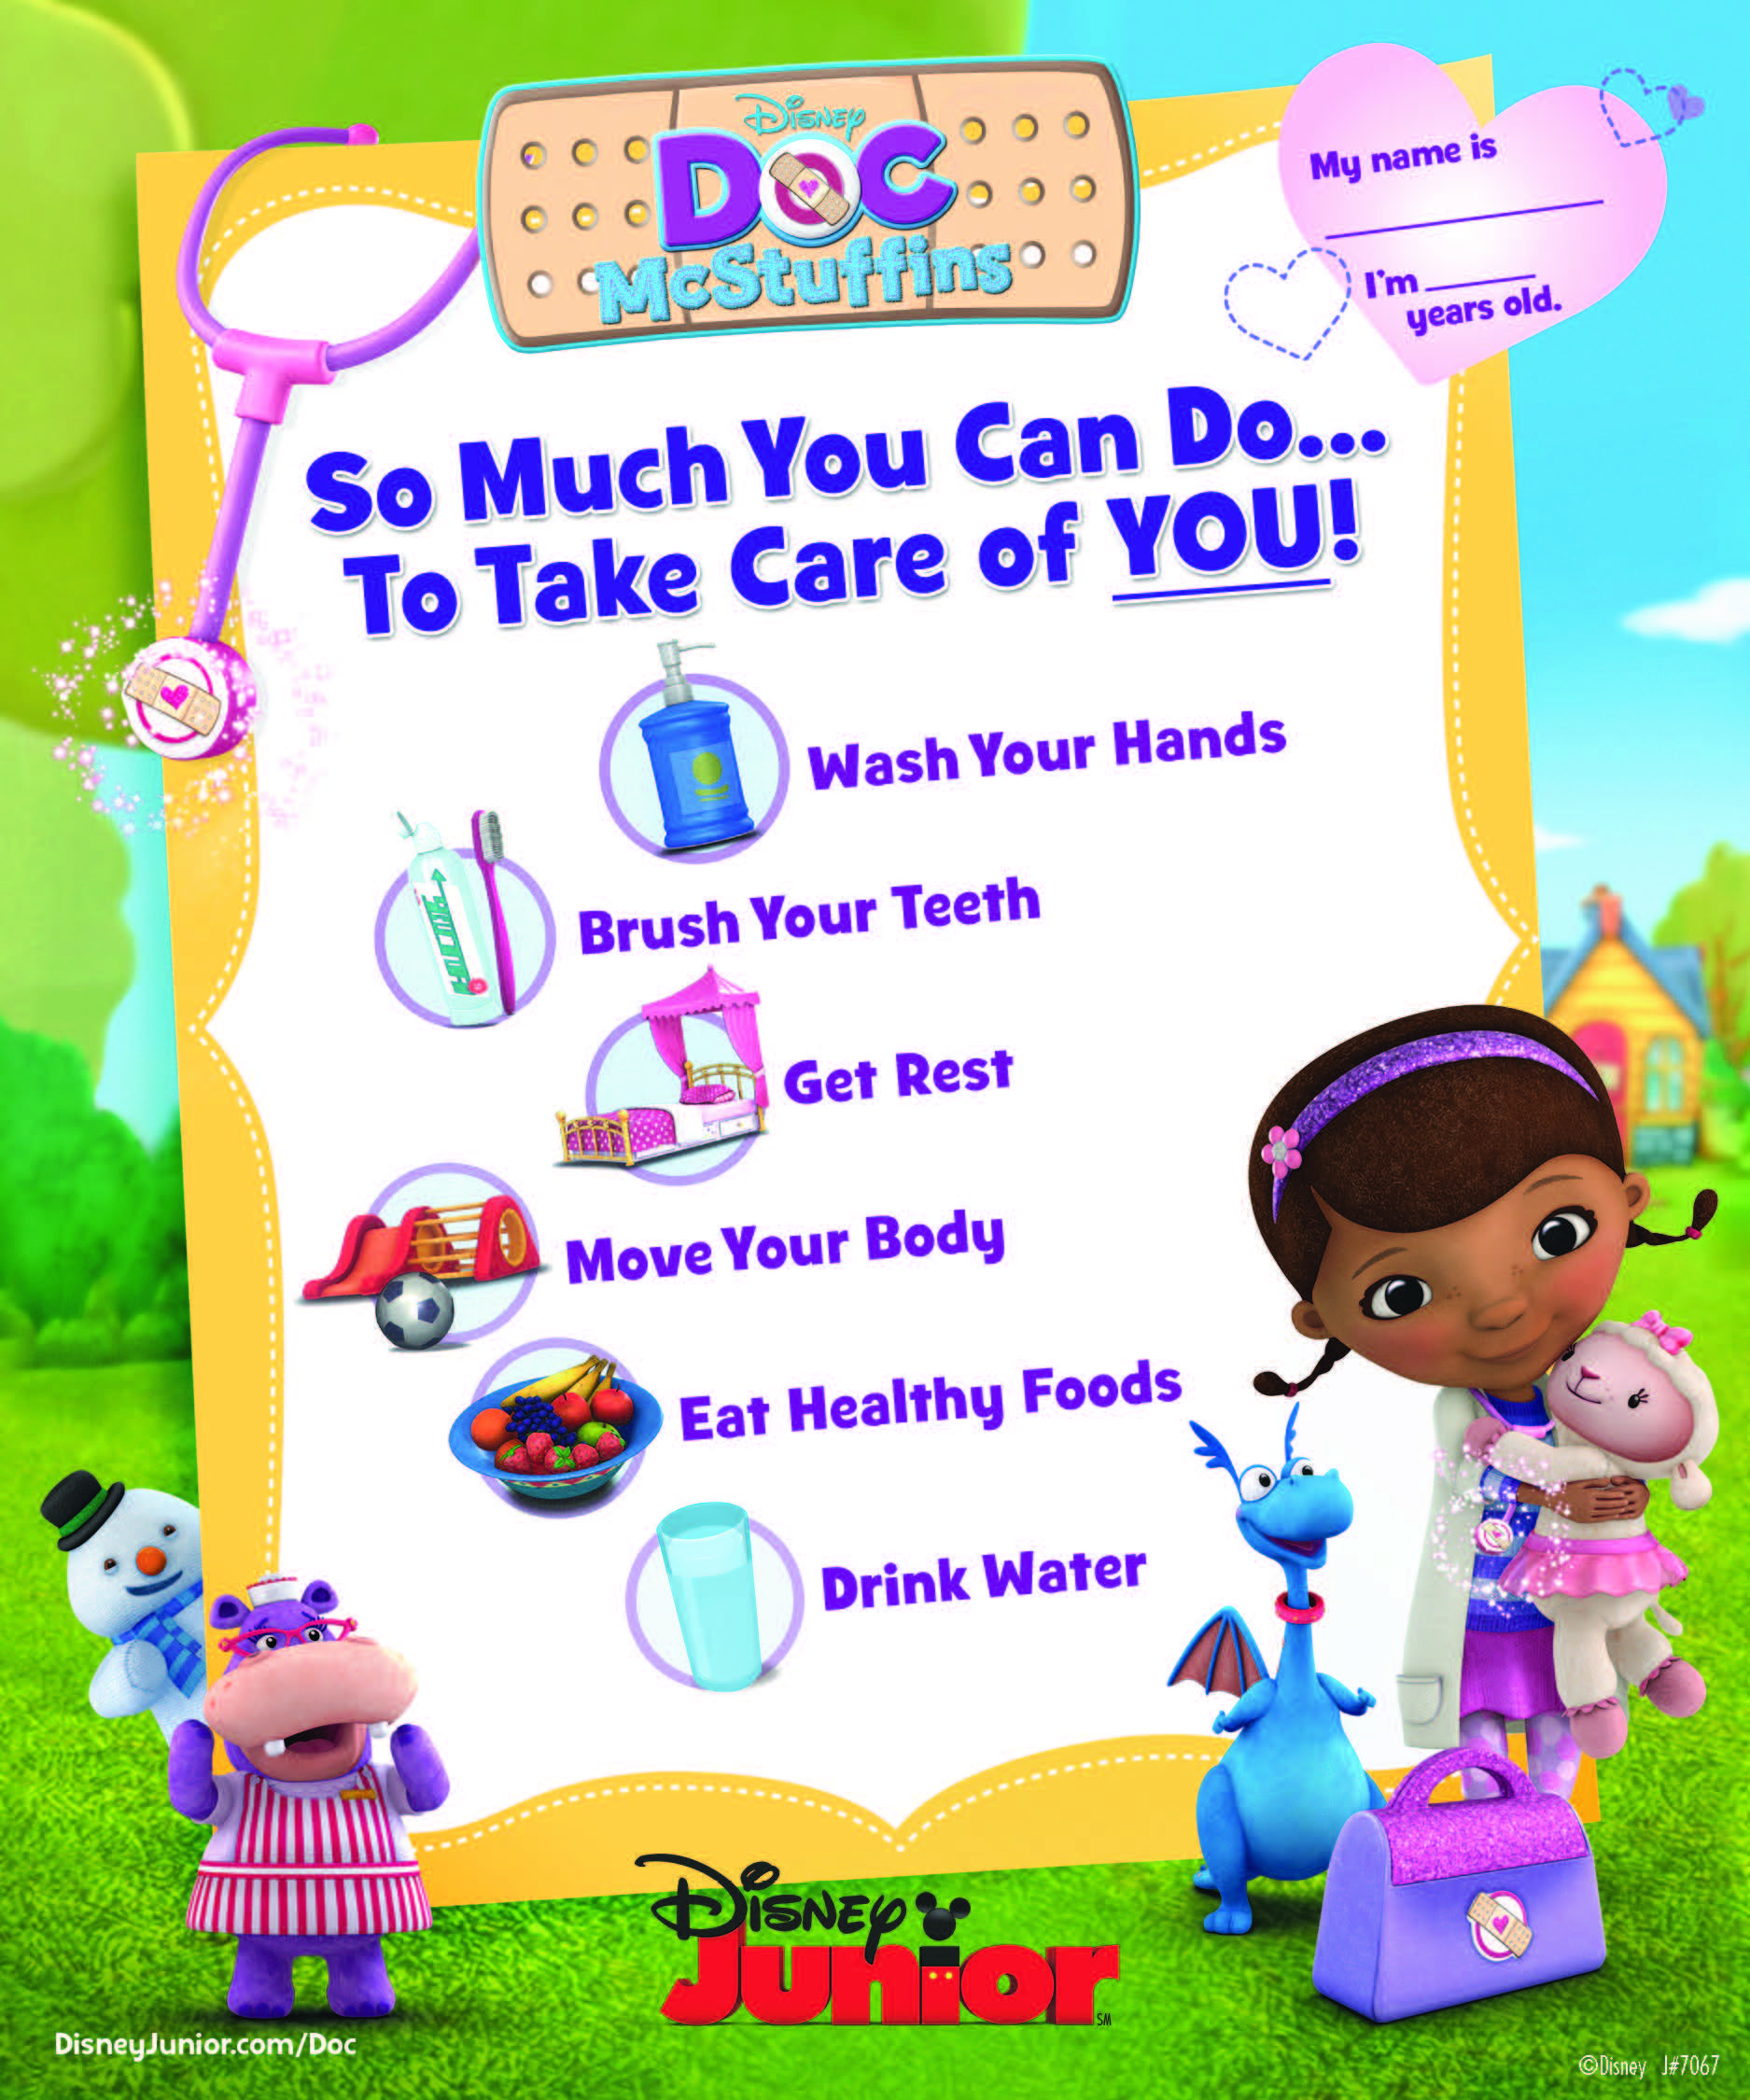 Teach Your Little One About Staying Healthy With This List From Doc